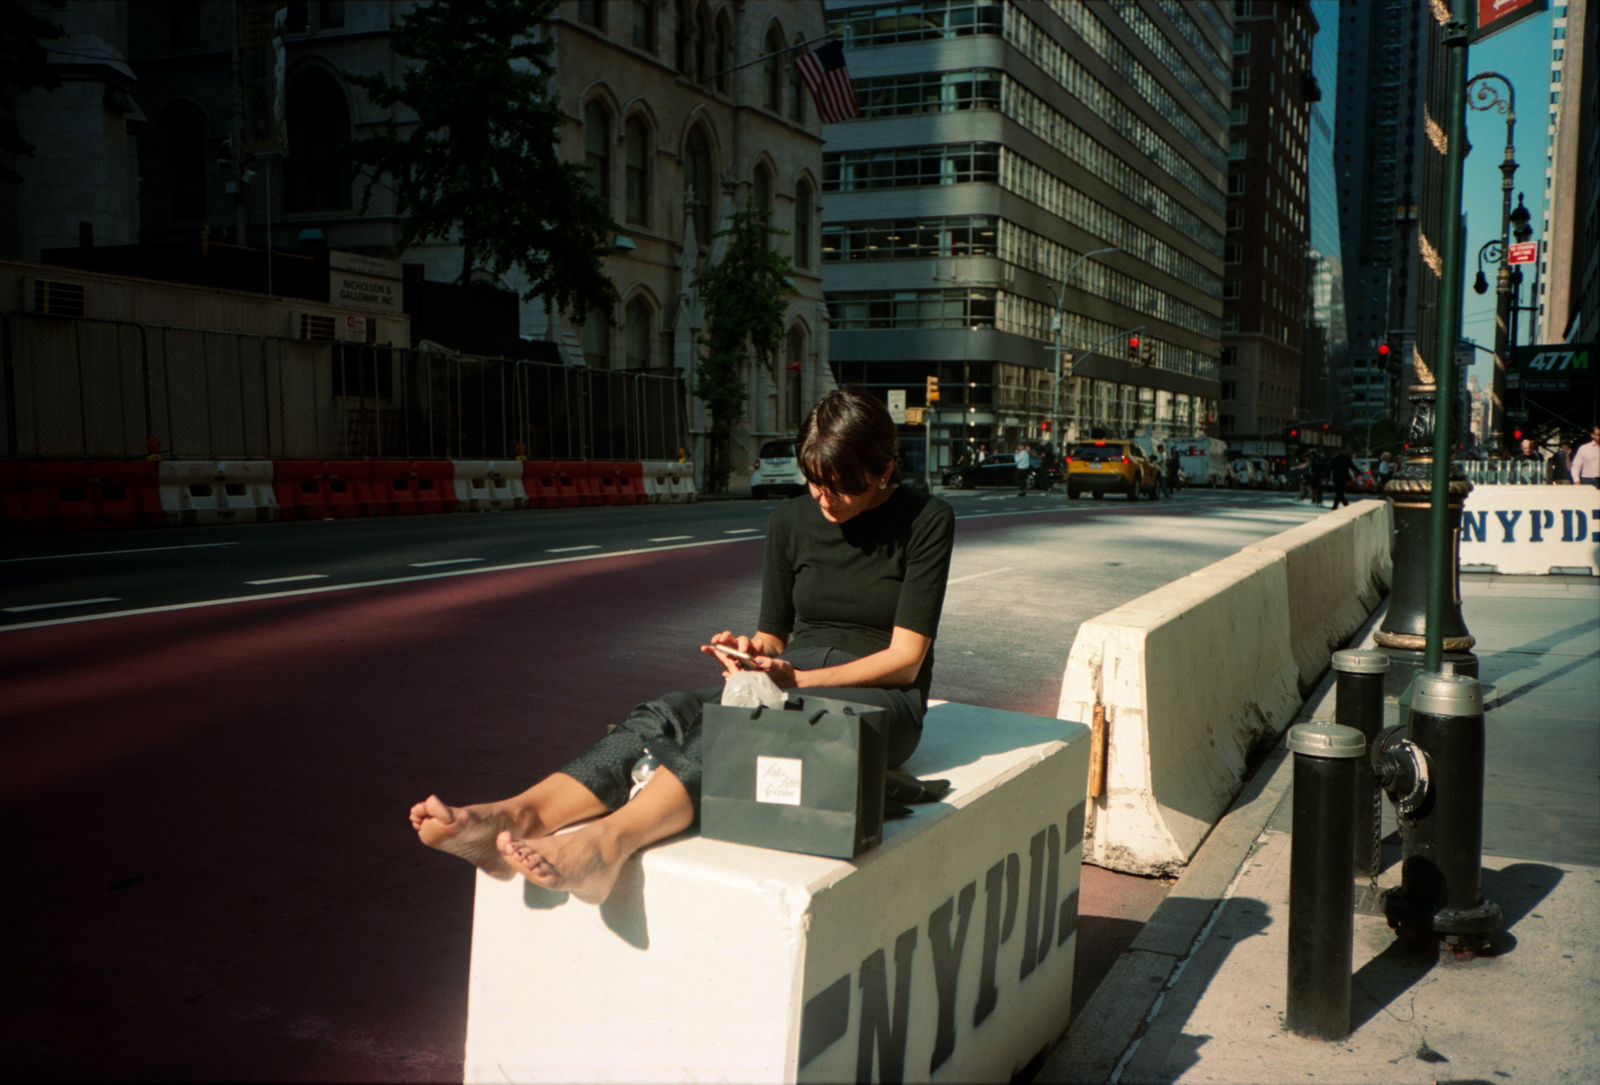 Taking a Break, sitting on an NYPD barricade,  Madison Avenue, Lonely New York, Photography By Ioannis Koussertari.